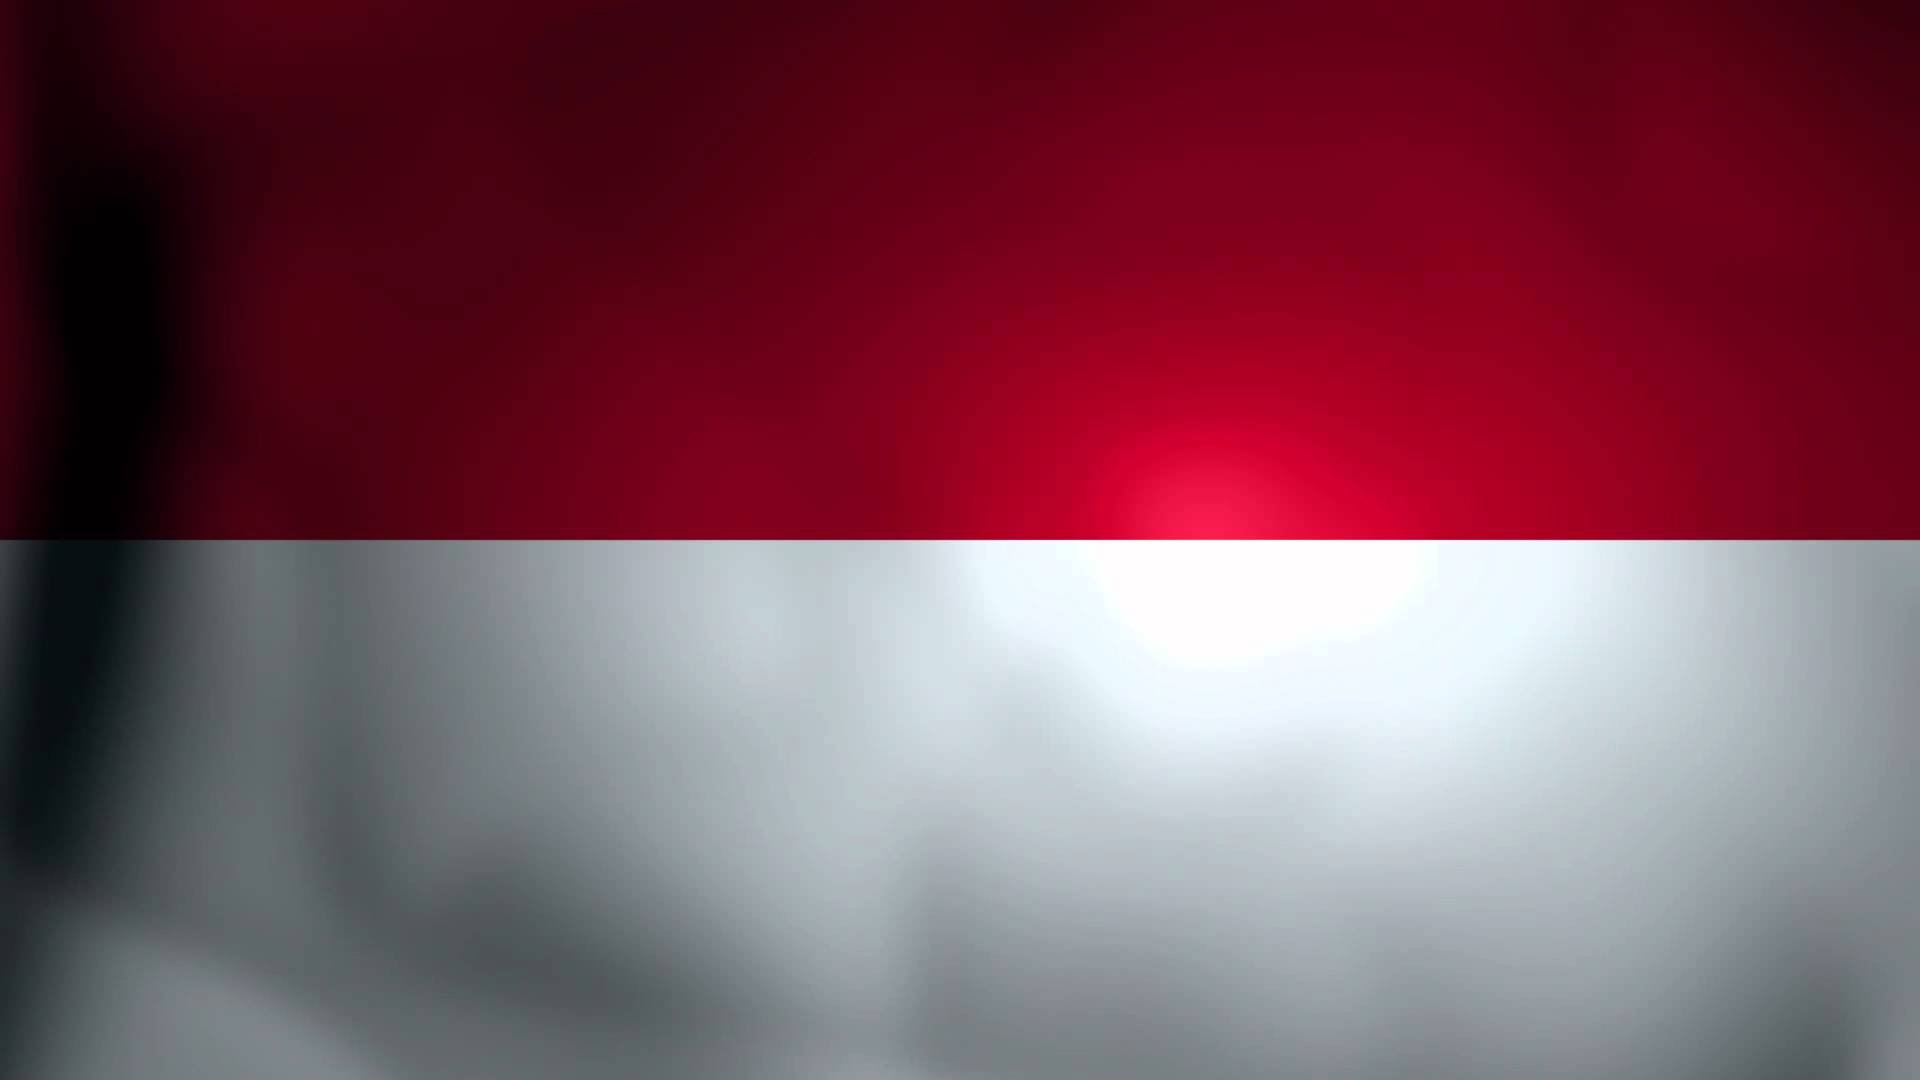 indonesian flag indonesia flags wallpaper 1920x1080 515146